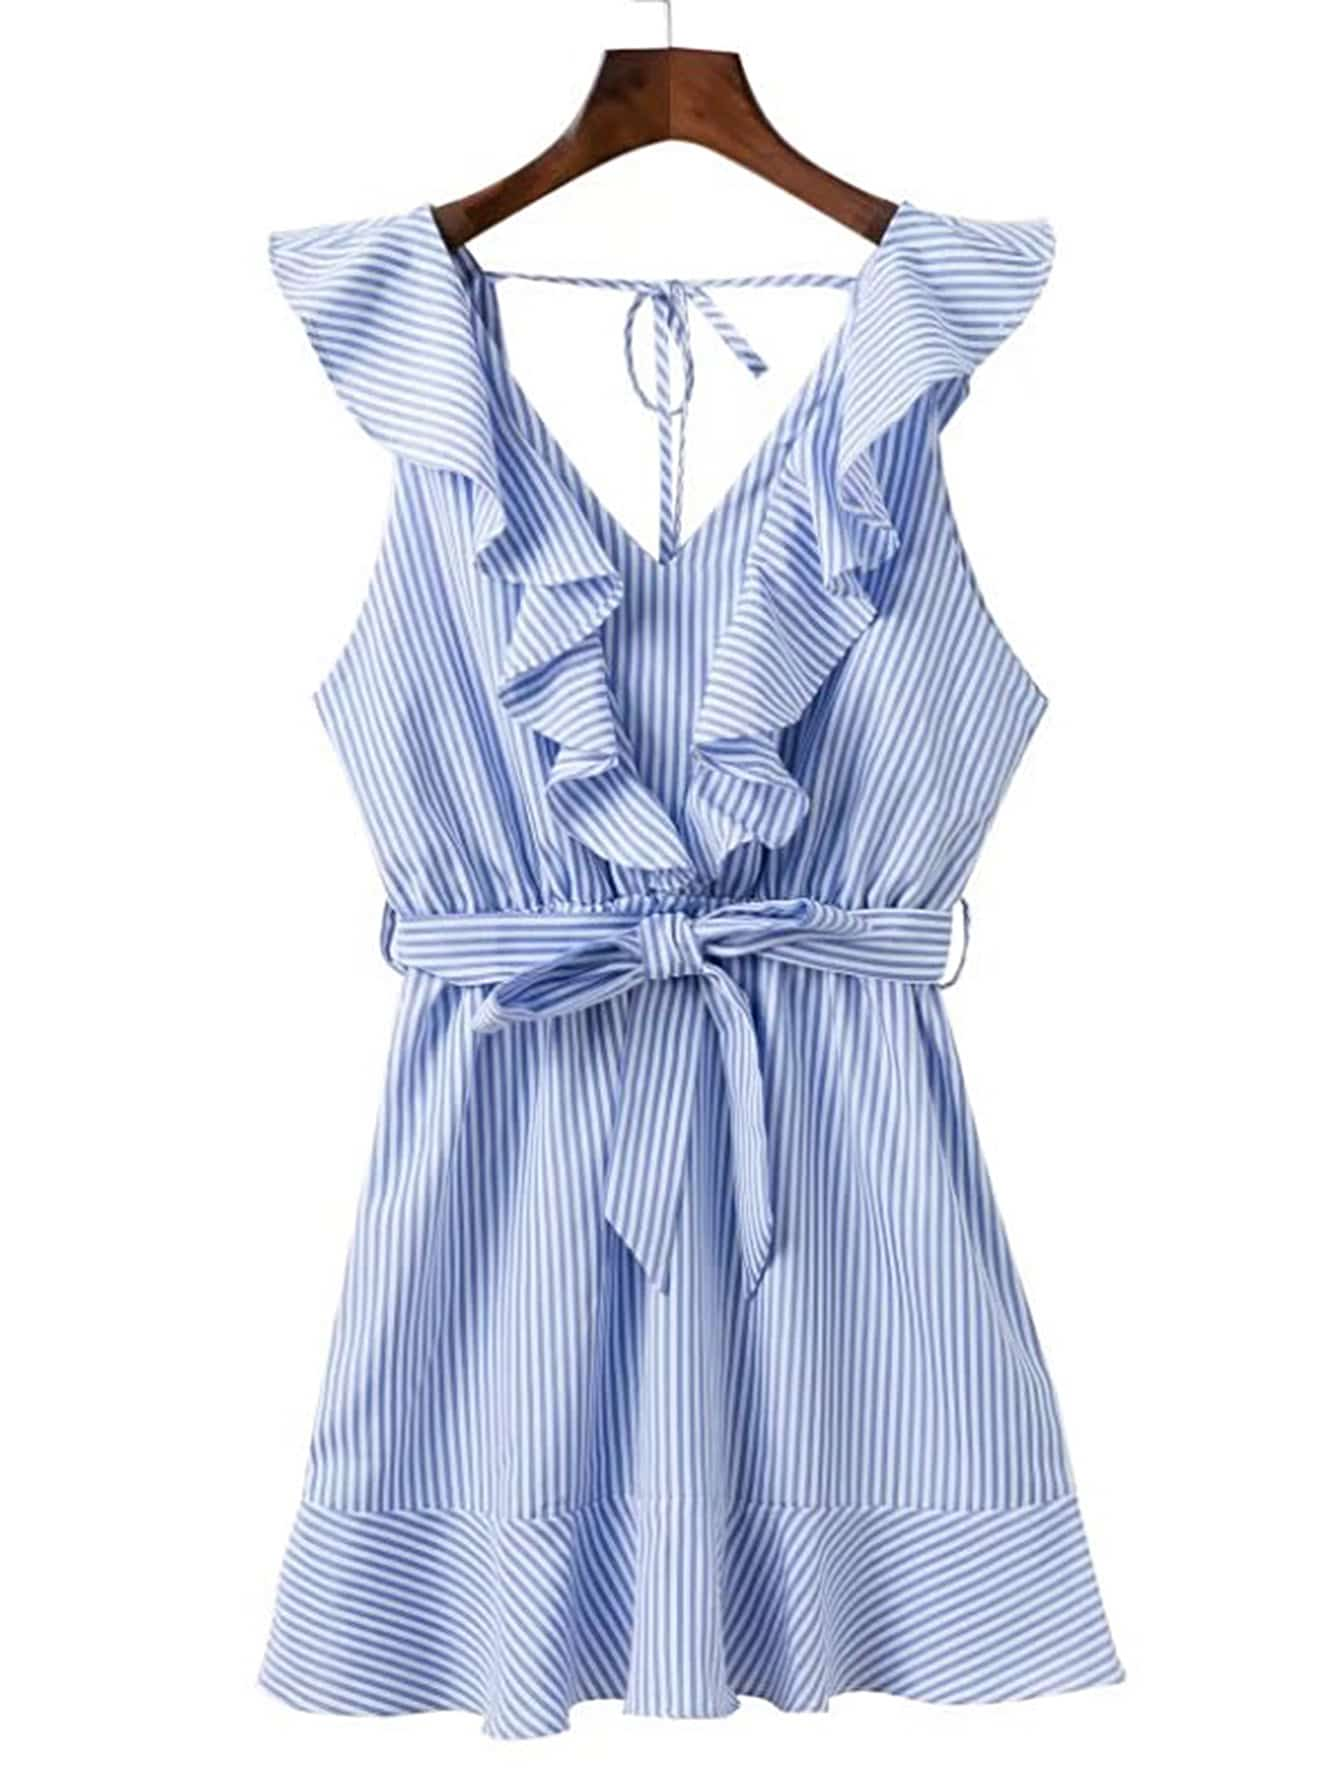 Фото Ruffle Trim Tie Back Bow Tie Waist Dress. Купить с доставкой